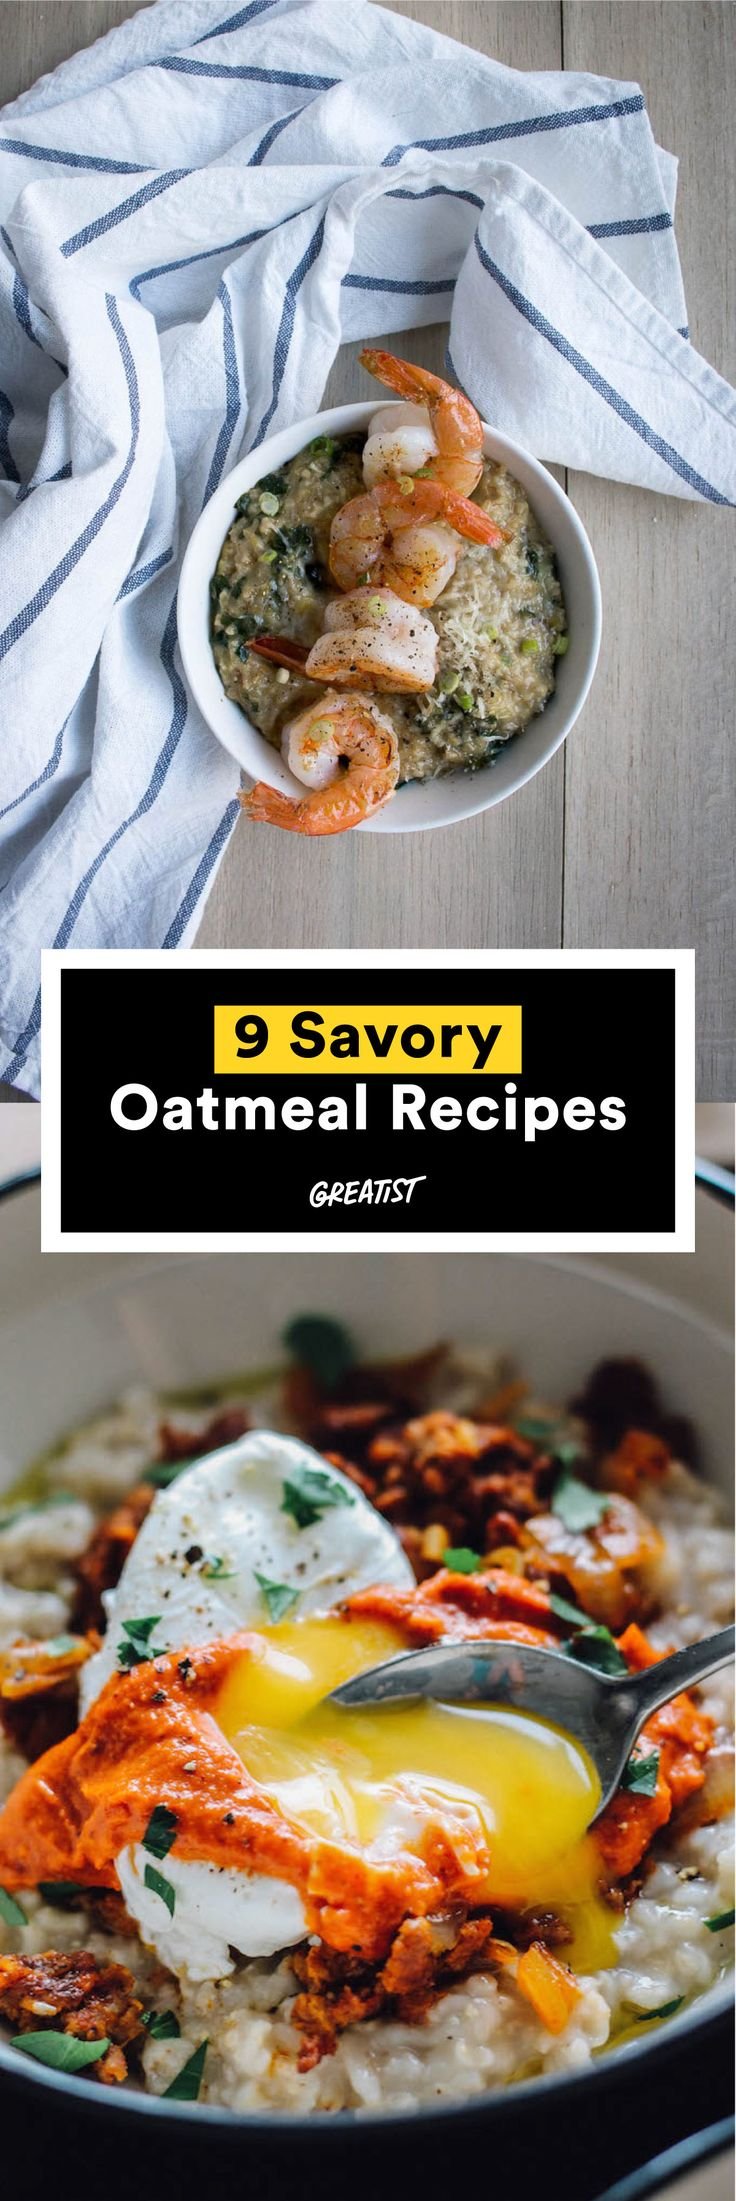 You can do so much better than brown sugar. #savory #oatmeal #recipe http://greatist.com/eat/oatmeal-recipes-that-are-savory-not-sweet